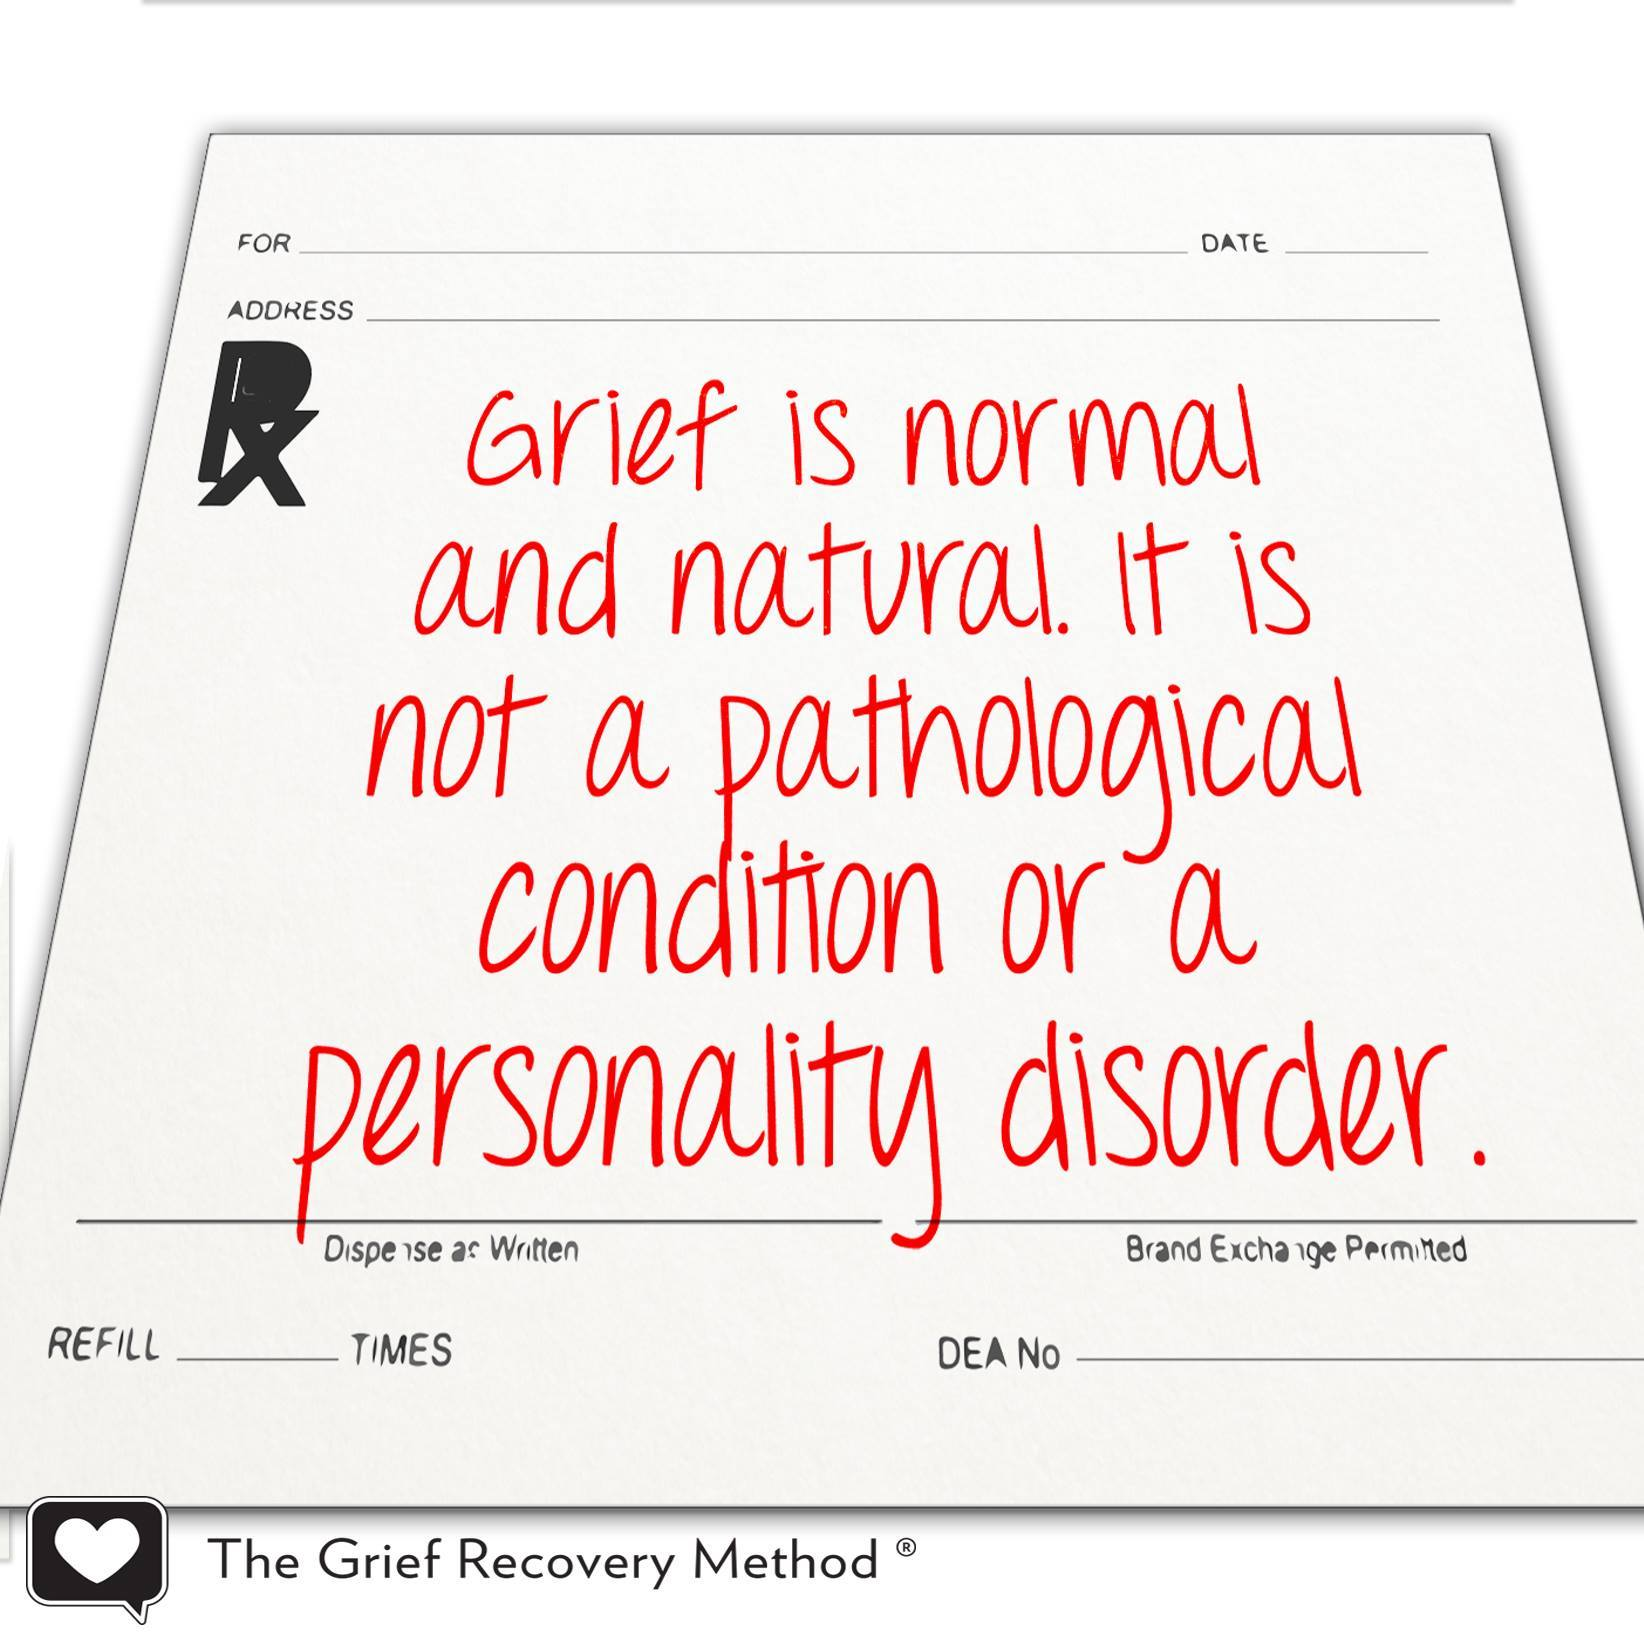 grief is normal and natural not pathological condition or disorder